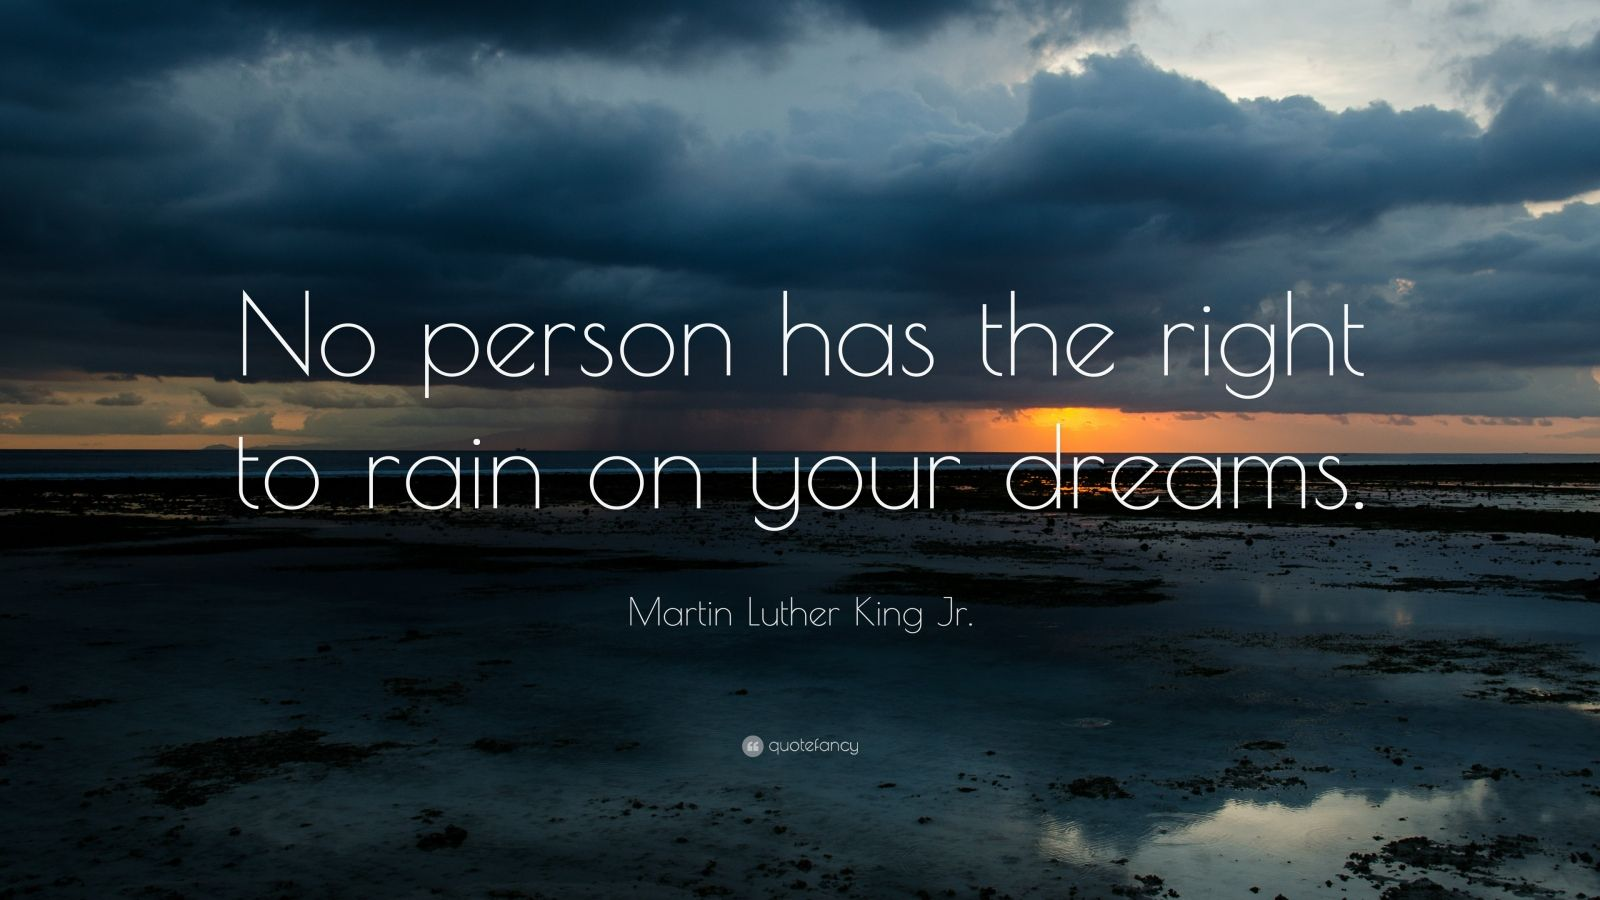 Mlk Quotes Wallpapers Martin Luther King Jr Quote No Person Has The Right To